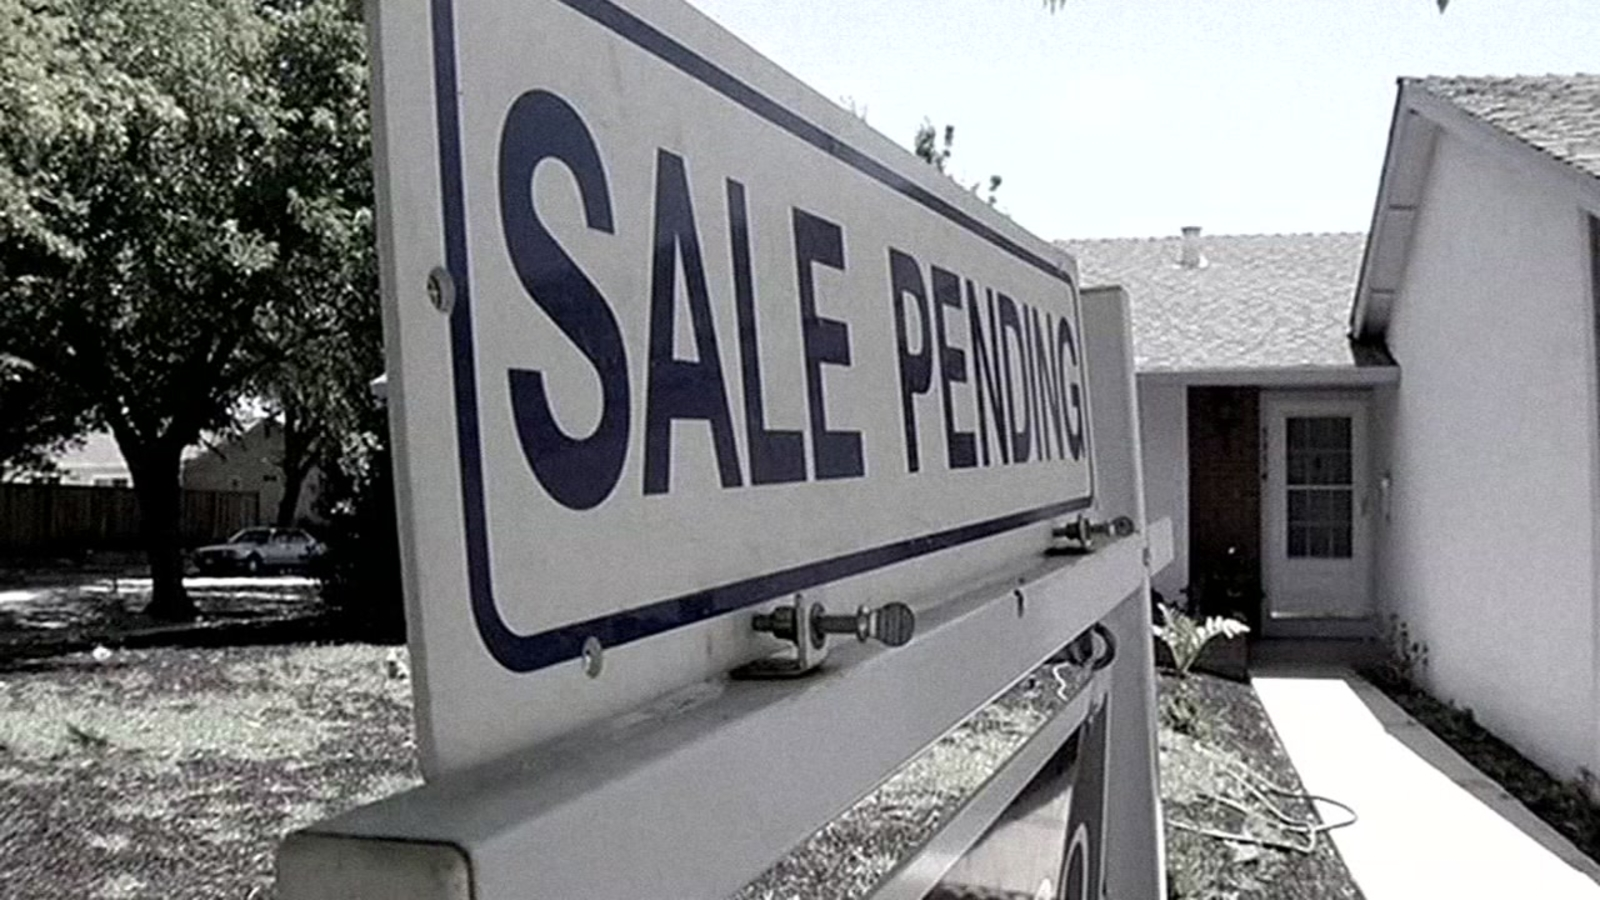 Homebuying hurdle: How can you afford a down payment?